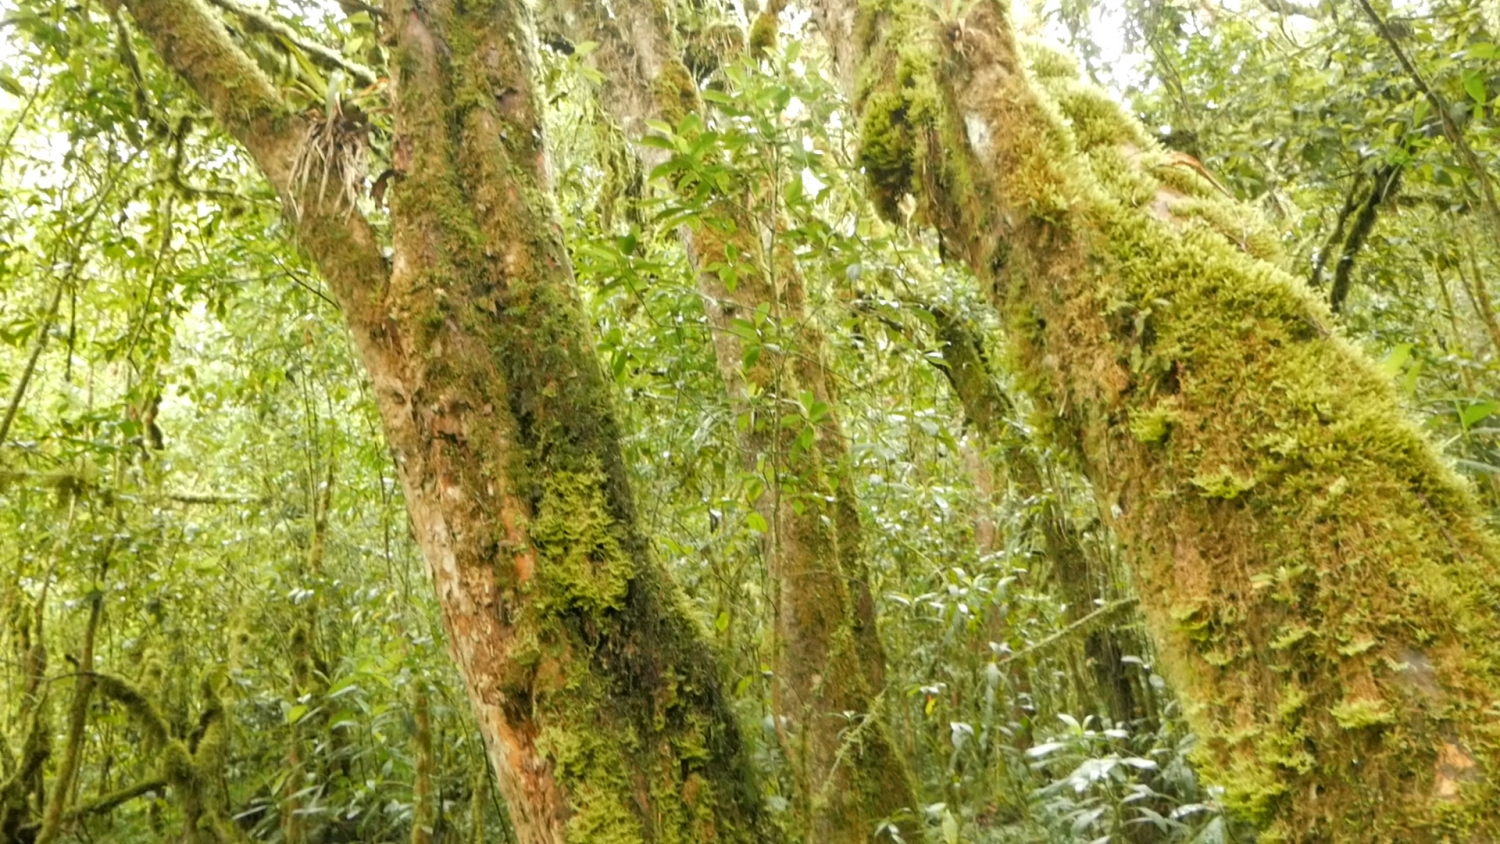 Polylepis Tree in Lower Cajas National Park near Cuenca Ecuador